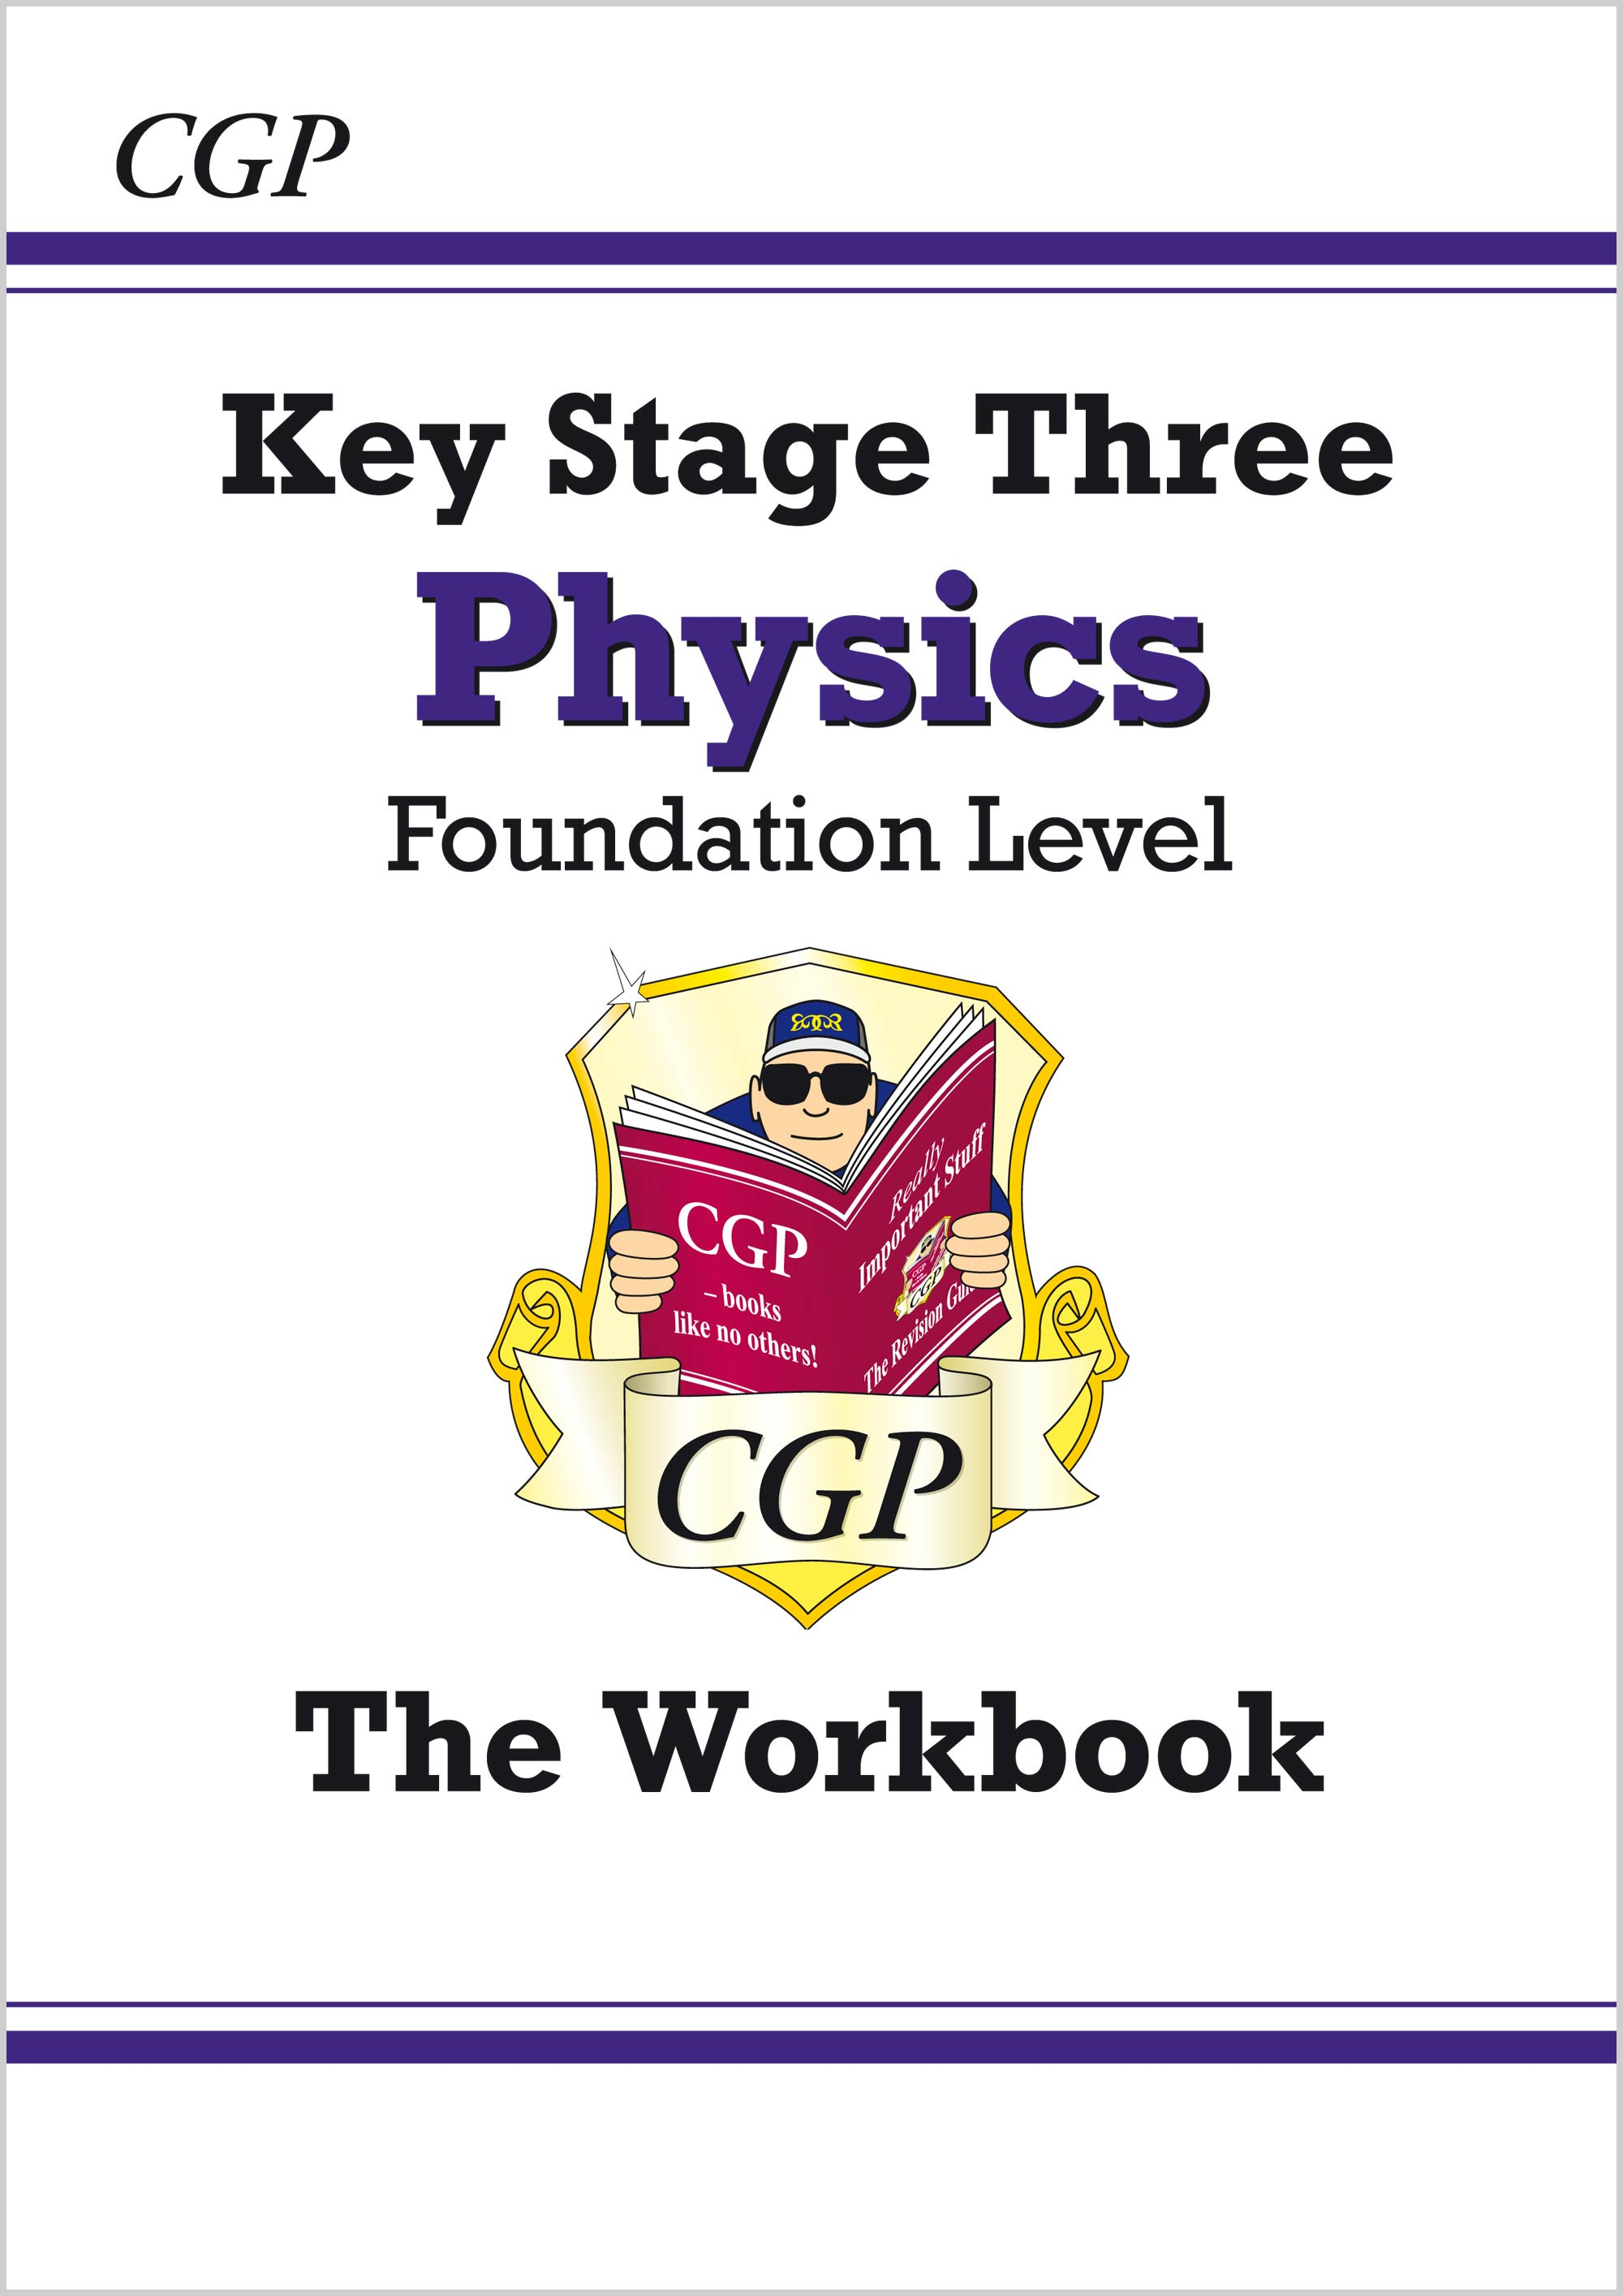 PFW32 - KS3 Physics Workbook - Foundation